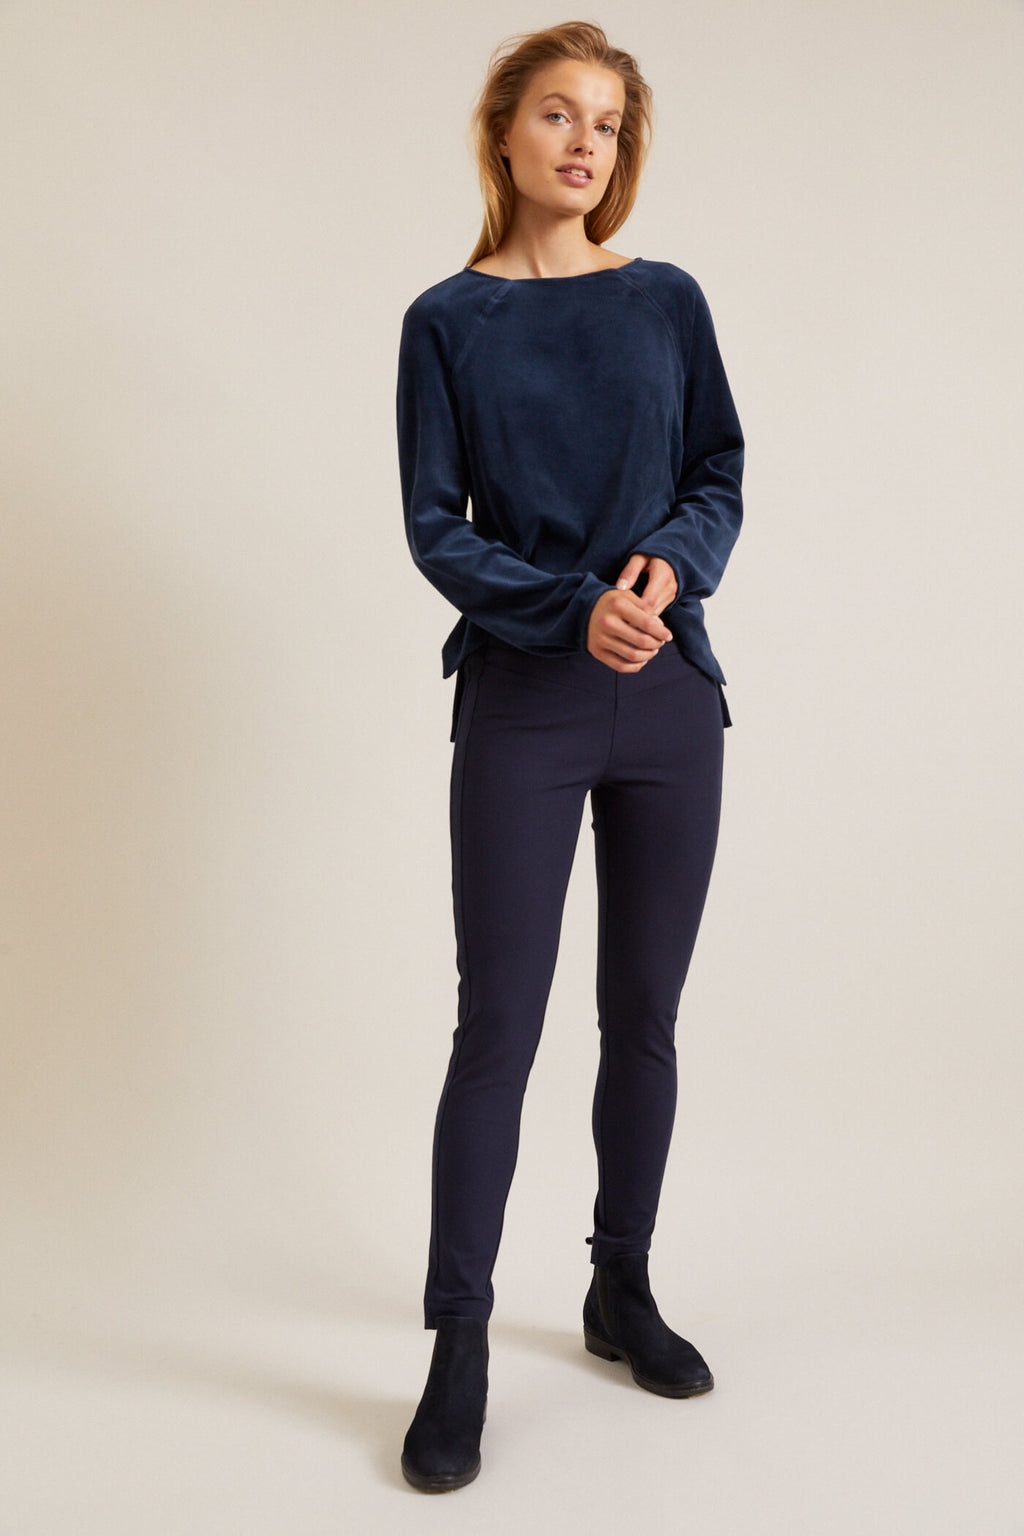 LANIUS - Compact Cotton Stretch Pants - INGAR